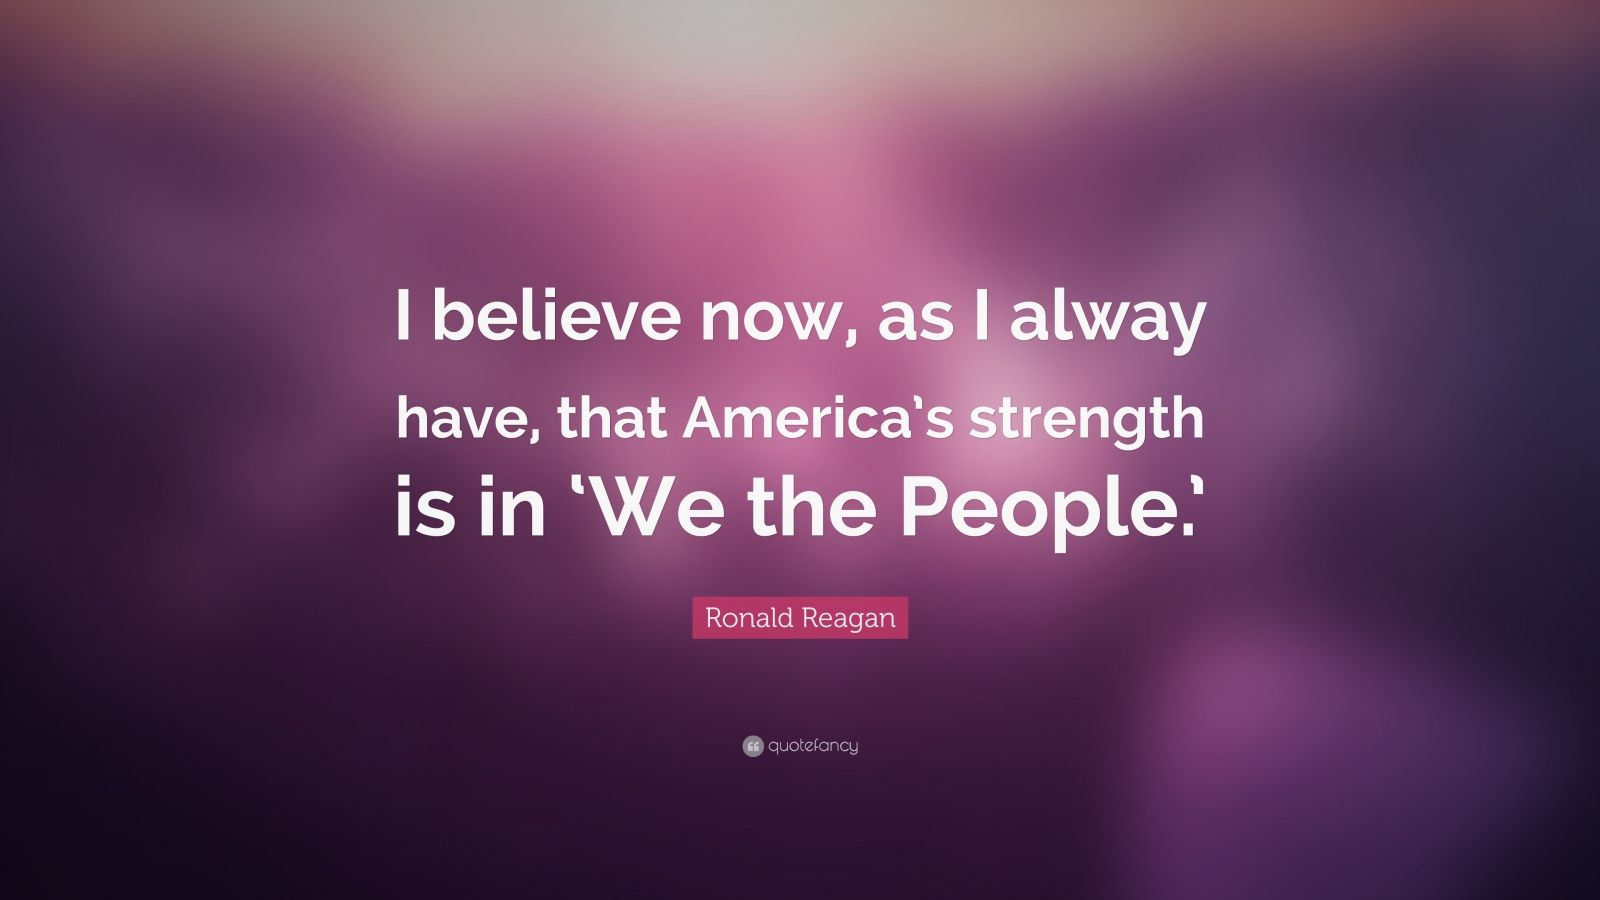 "Ronald Reagan Quote: ""I believe now, as I alway have, that America's strength is in 'We the People.'"""